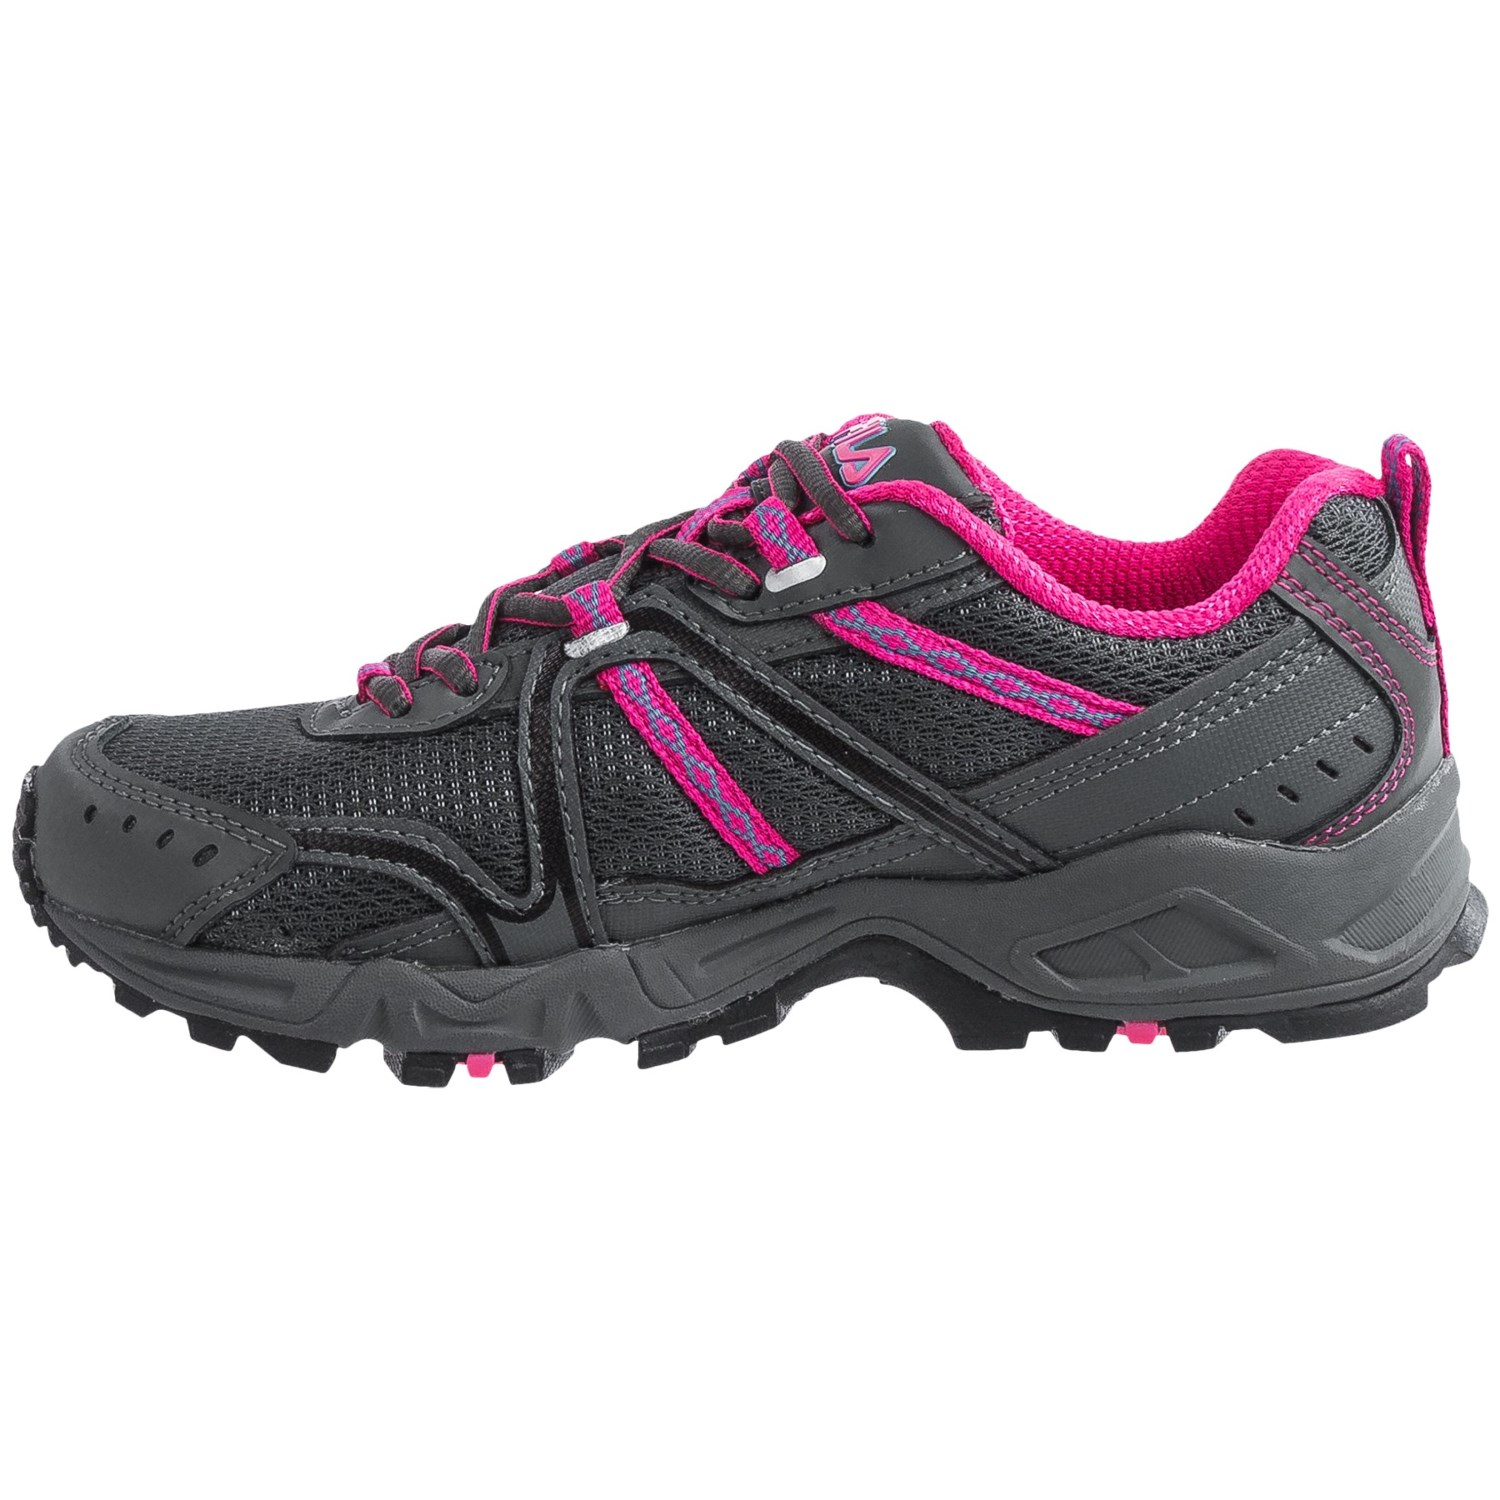 fila ascent 12 trail running shoes for women save 60